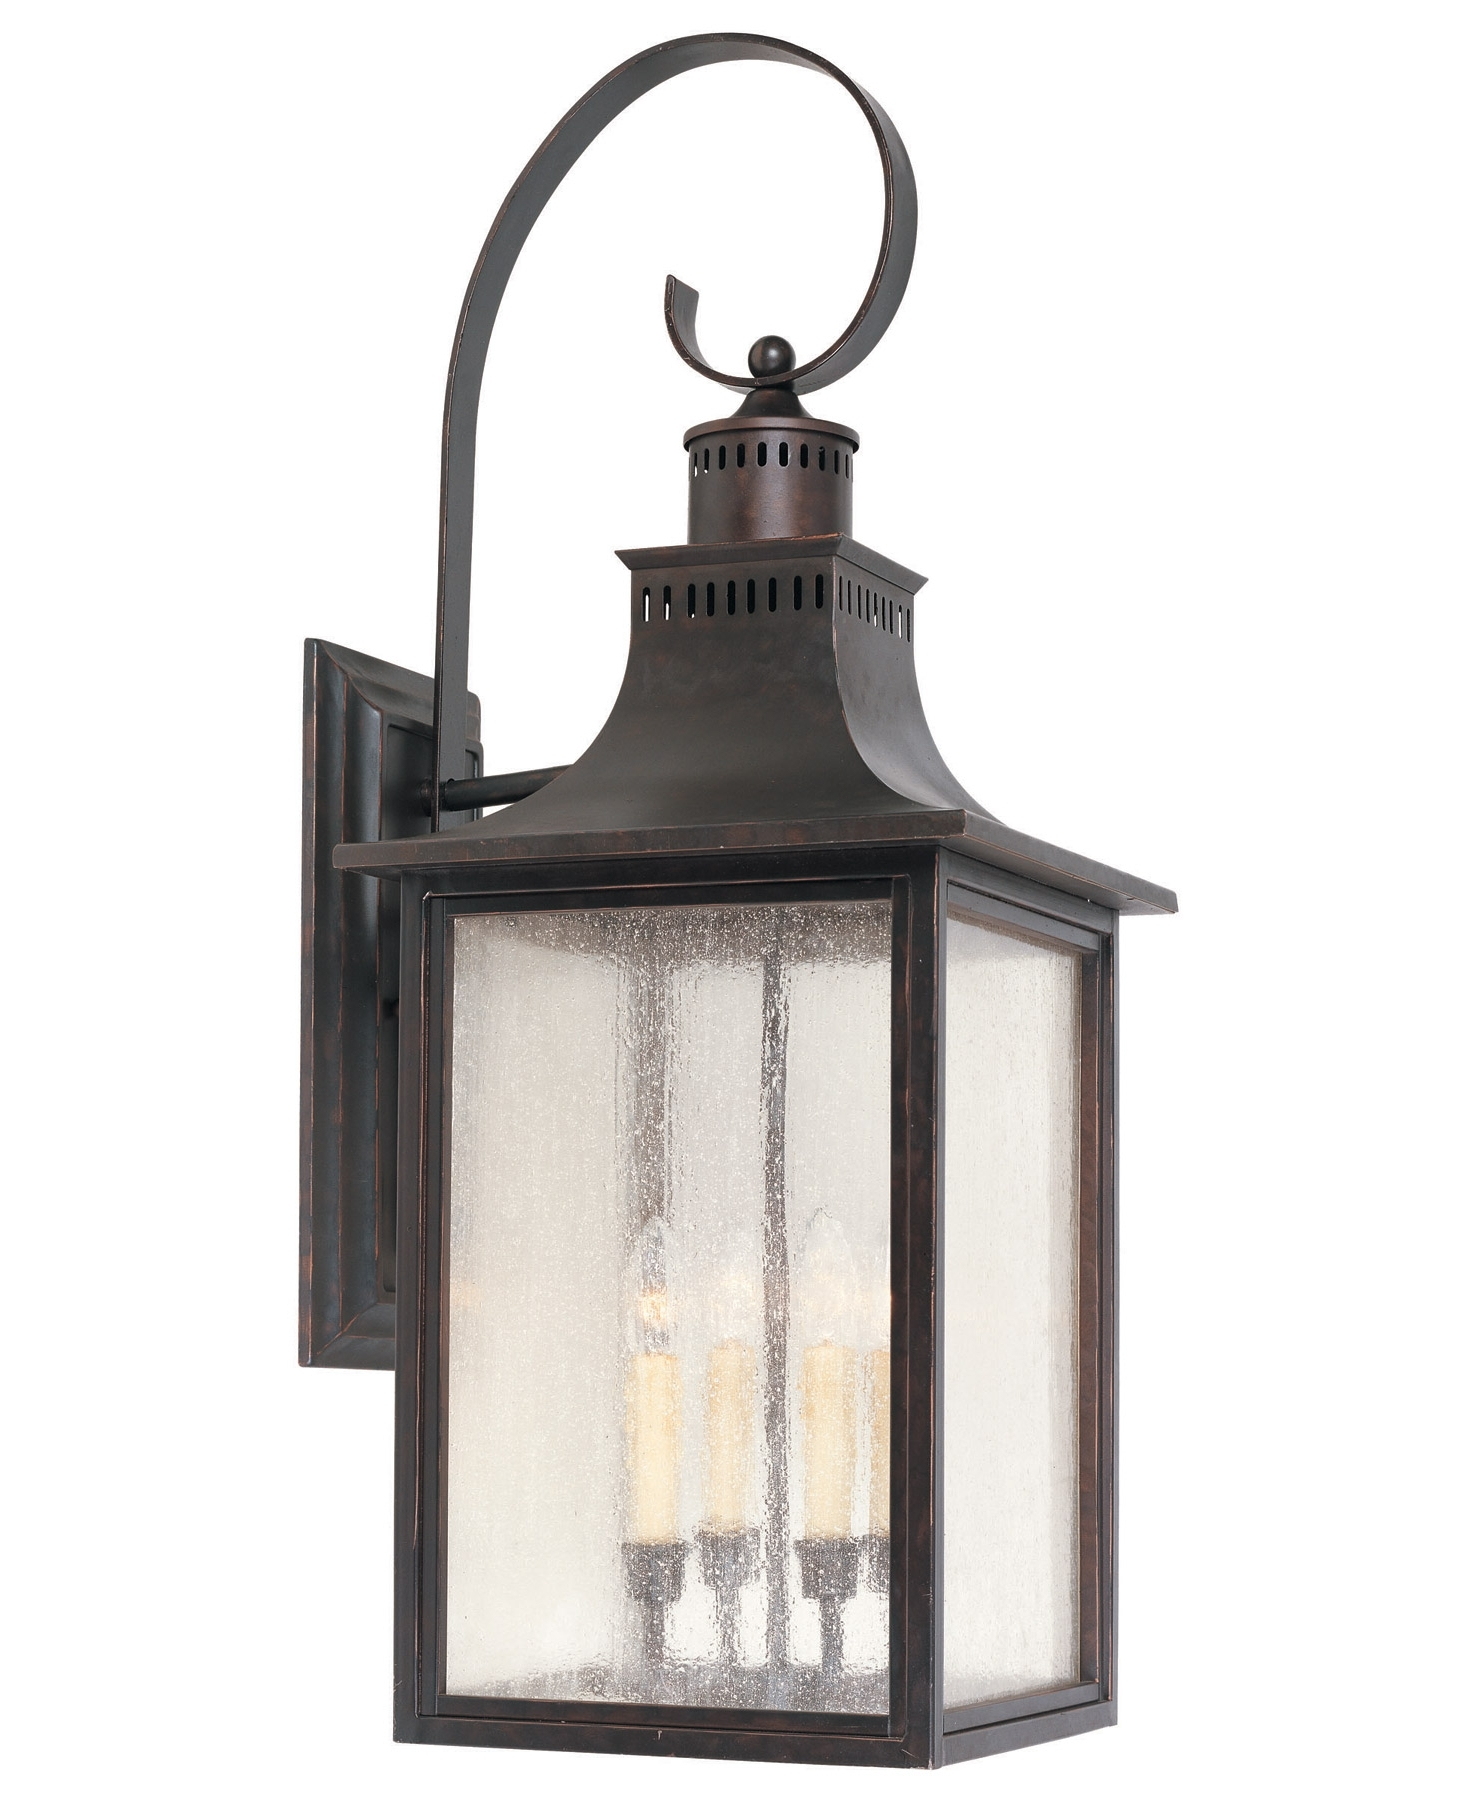 Savoy House 5 257 13 Monte Grande Outdoor Wall Mount Lantern With Regard To Popular Italian Outdoor Lanterns (View 17 of 20)